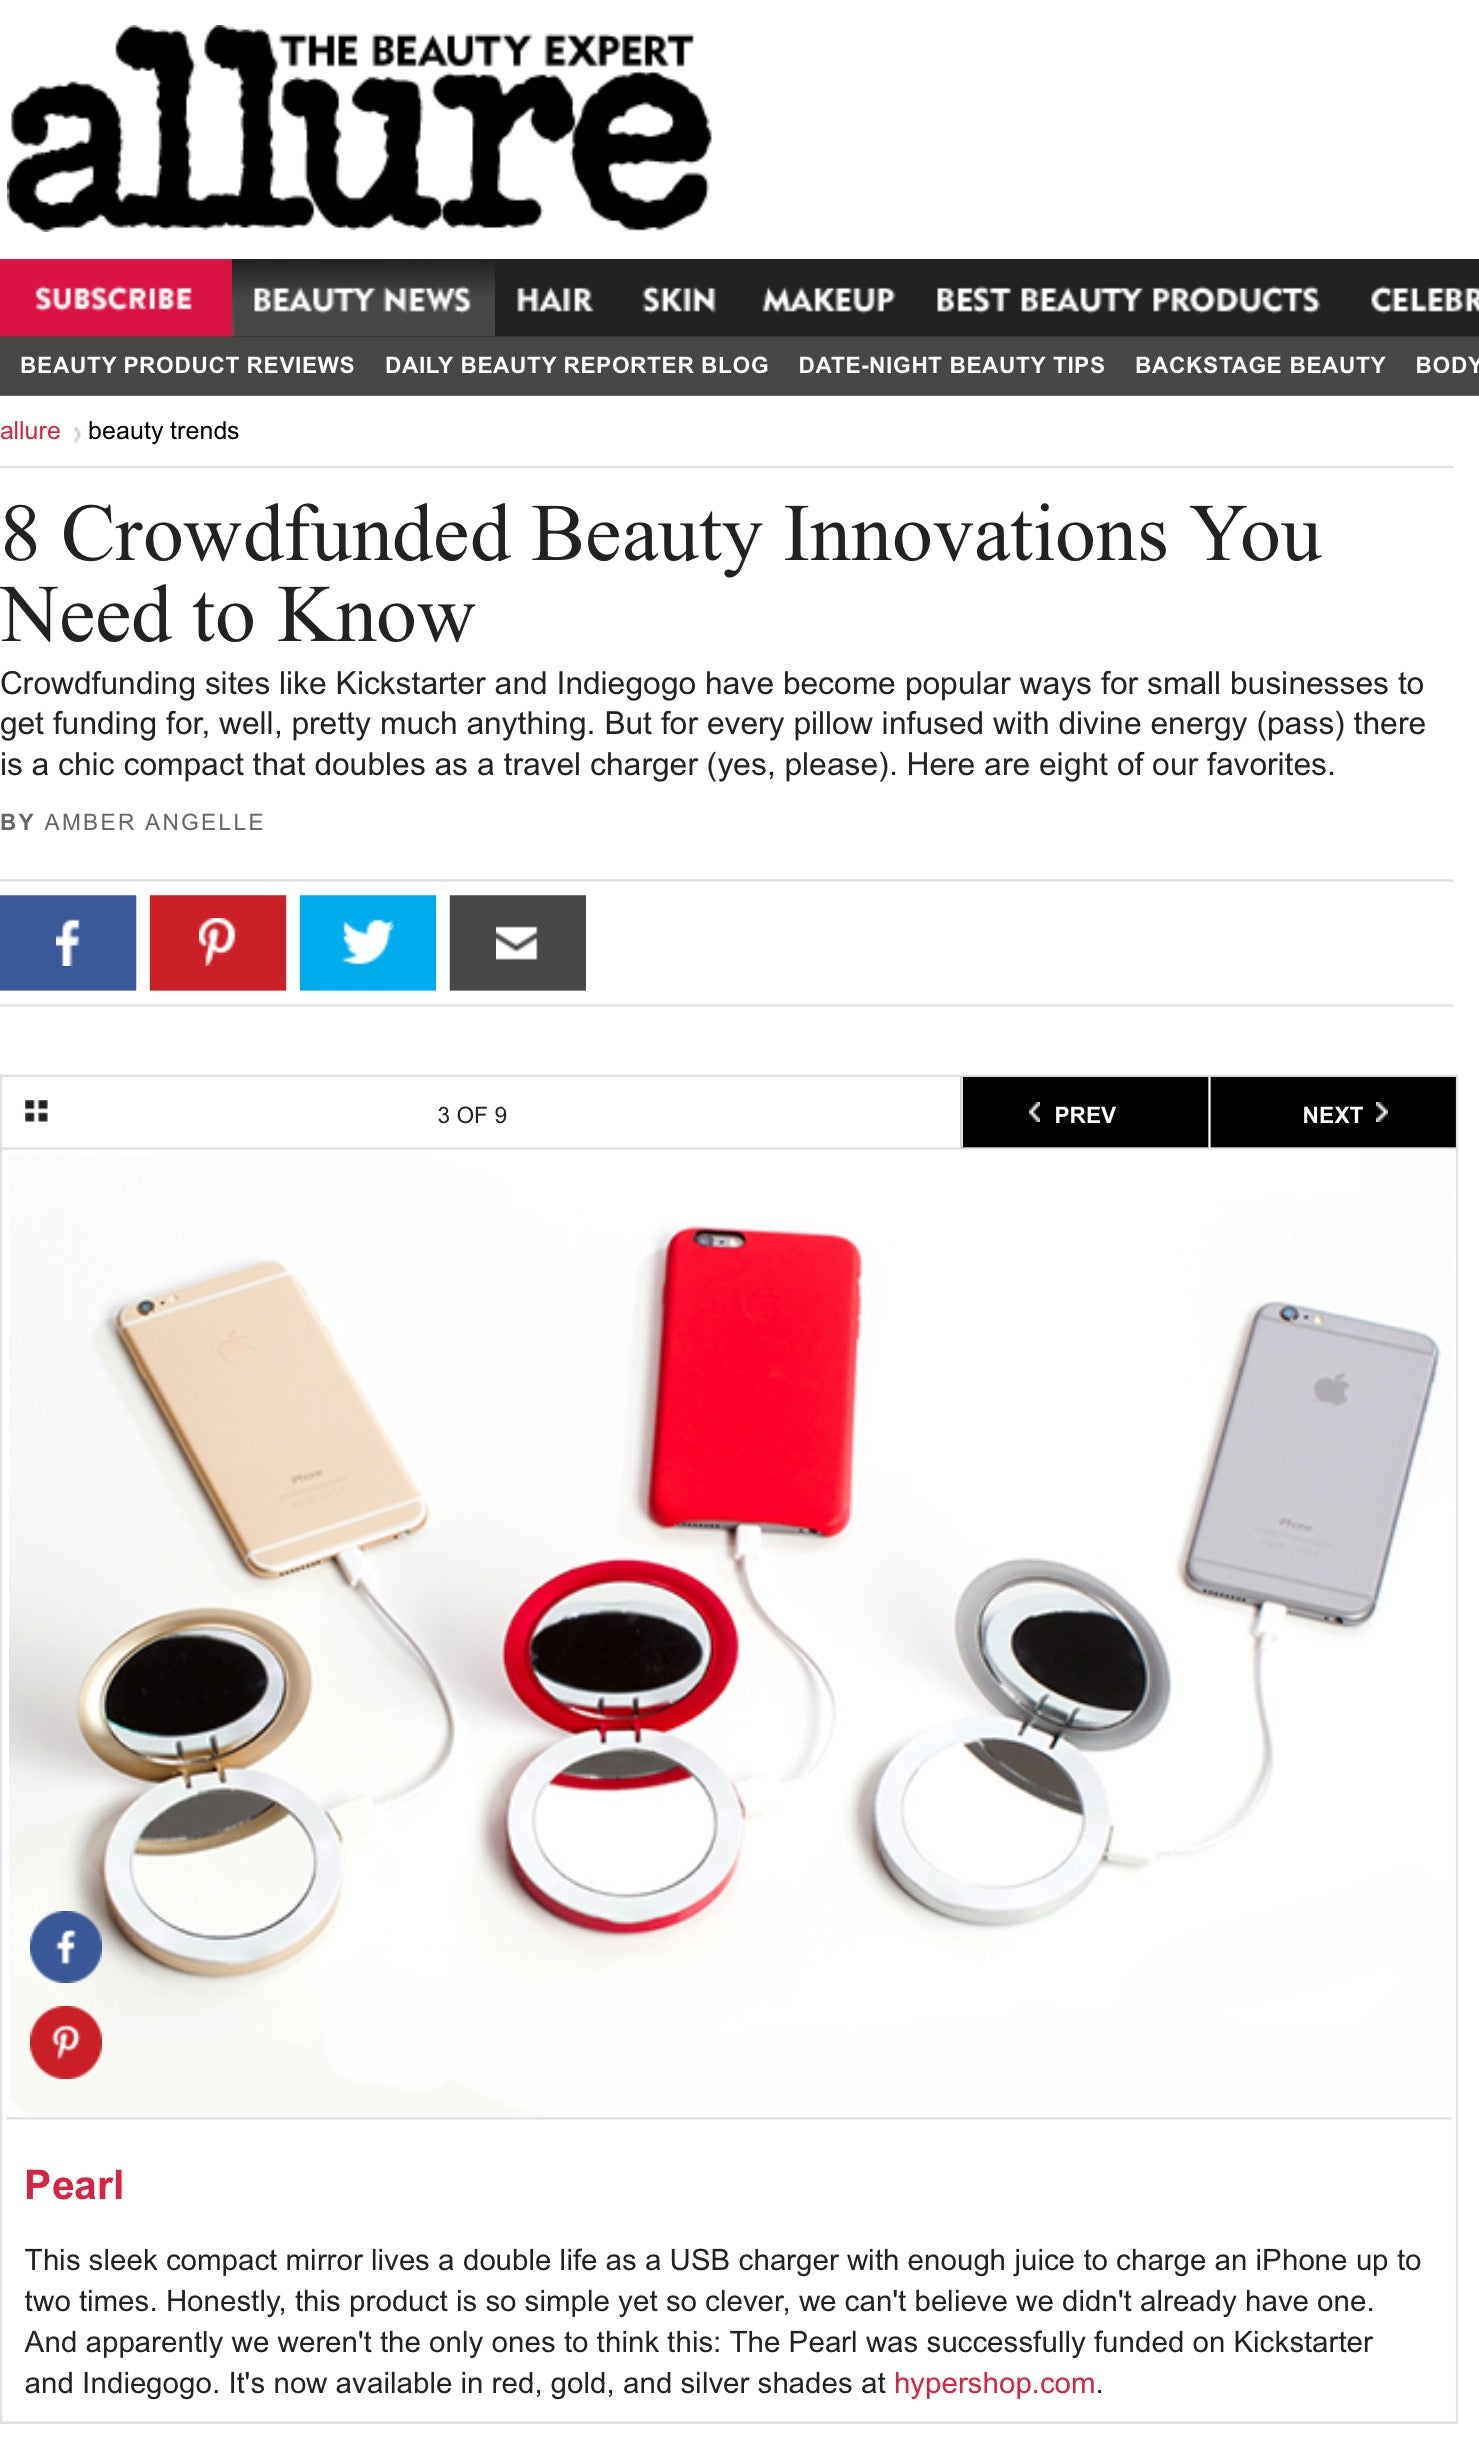 8 Crowdfunded Beauty Innovations You Need to Know